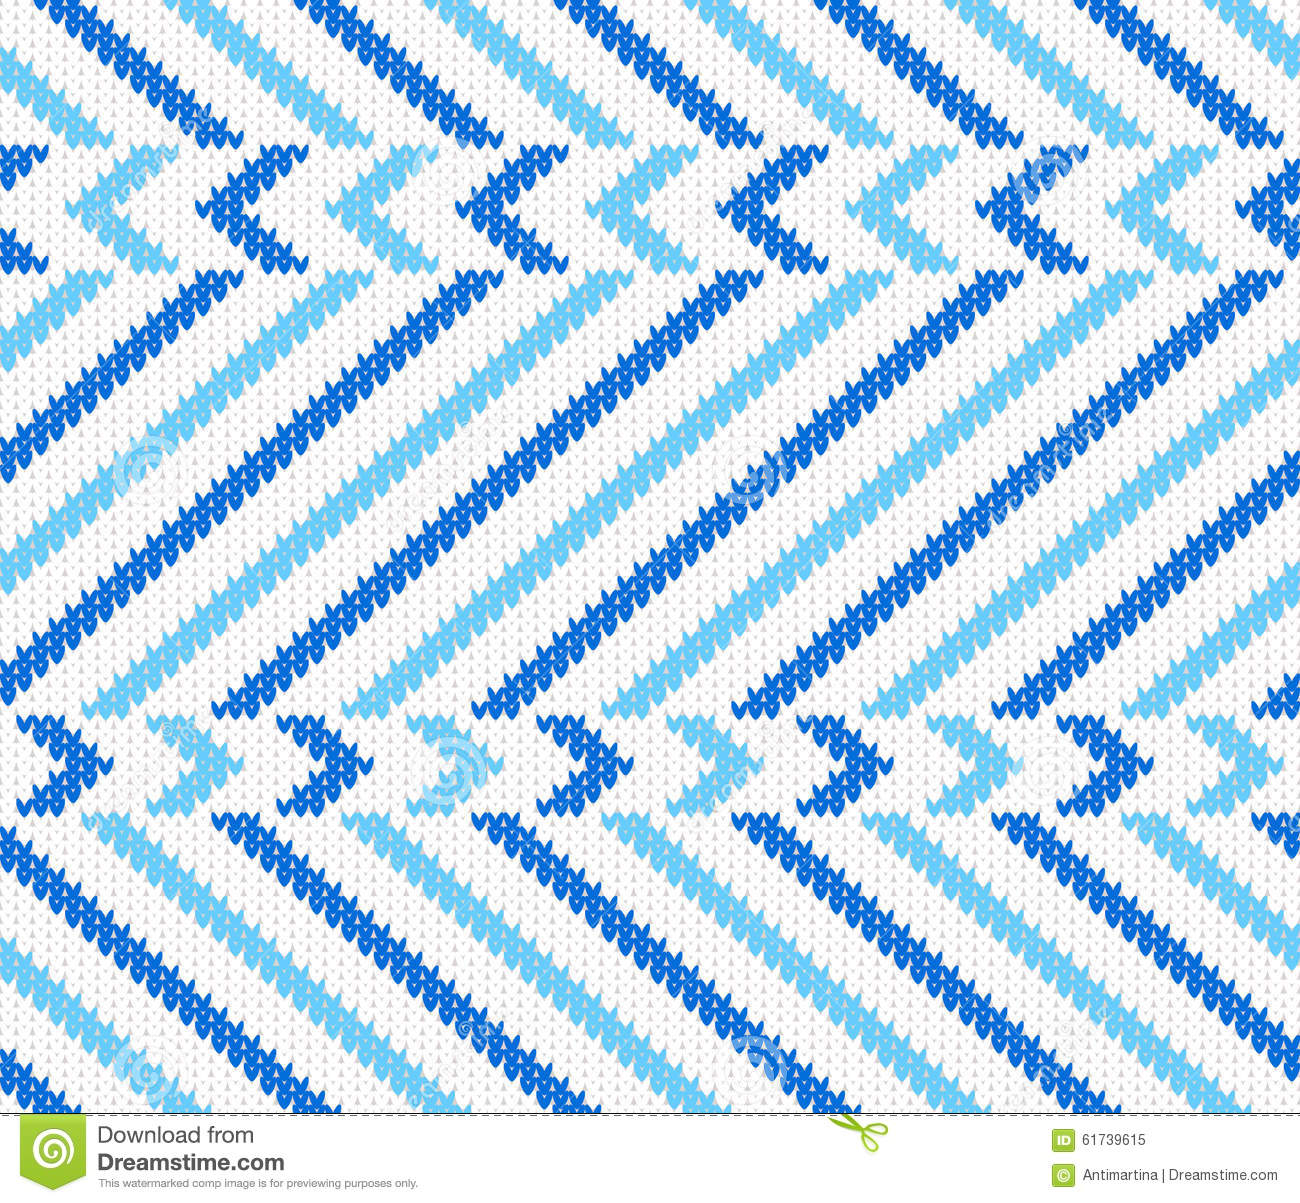 Seamless Knitting Pattern Stock Vector - Image: 61739615